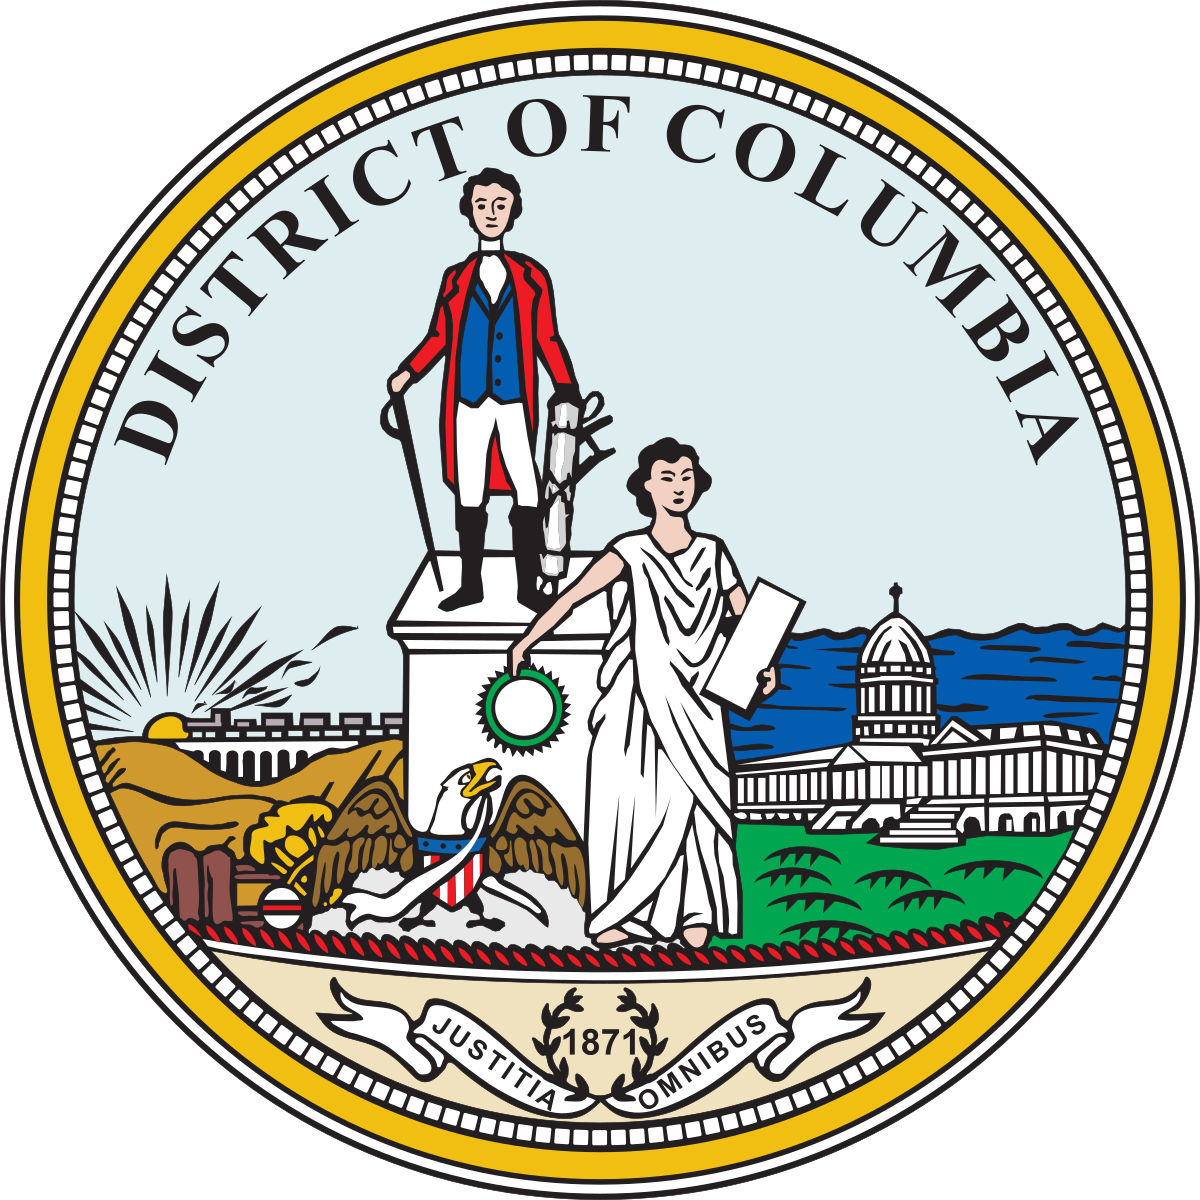 President clipart city government. Council of the district